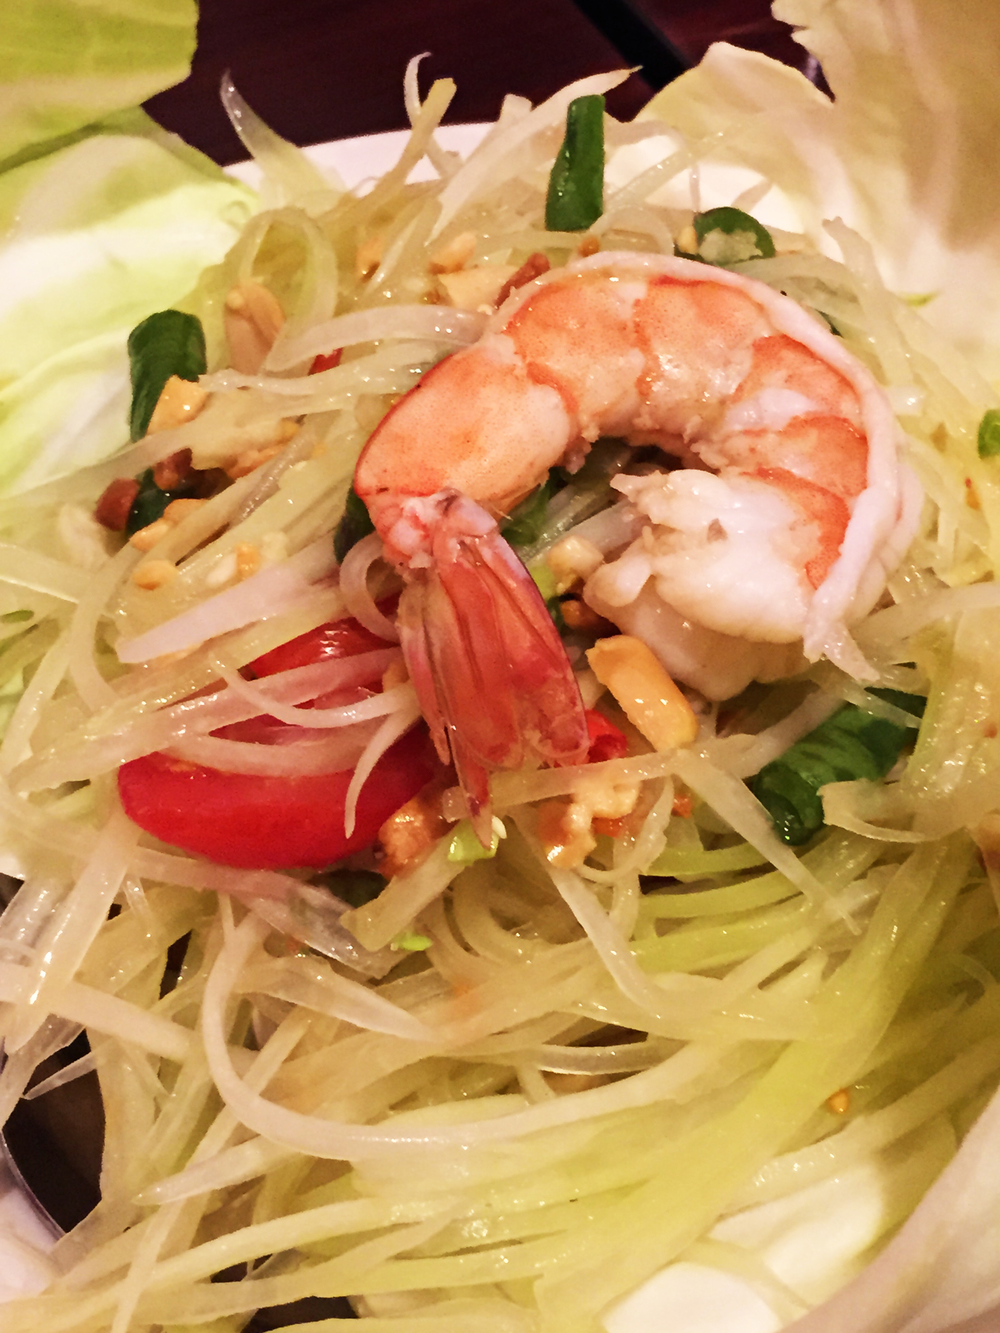 SOM TUM - PAPAYA SALAD - Julienne of green papaya with Thai Style flavor, mixed with garlic, Thai chilies, tomatoes, dried shrimp, ground peanuts and lime juice.